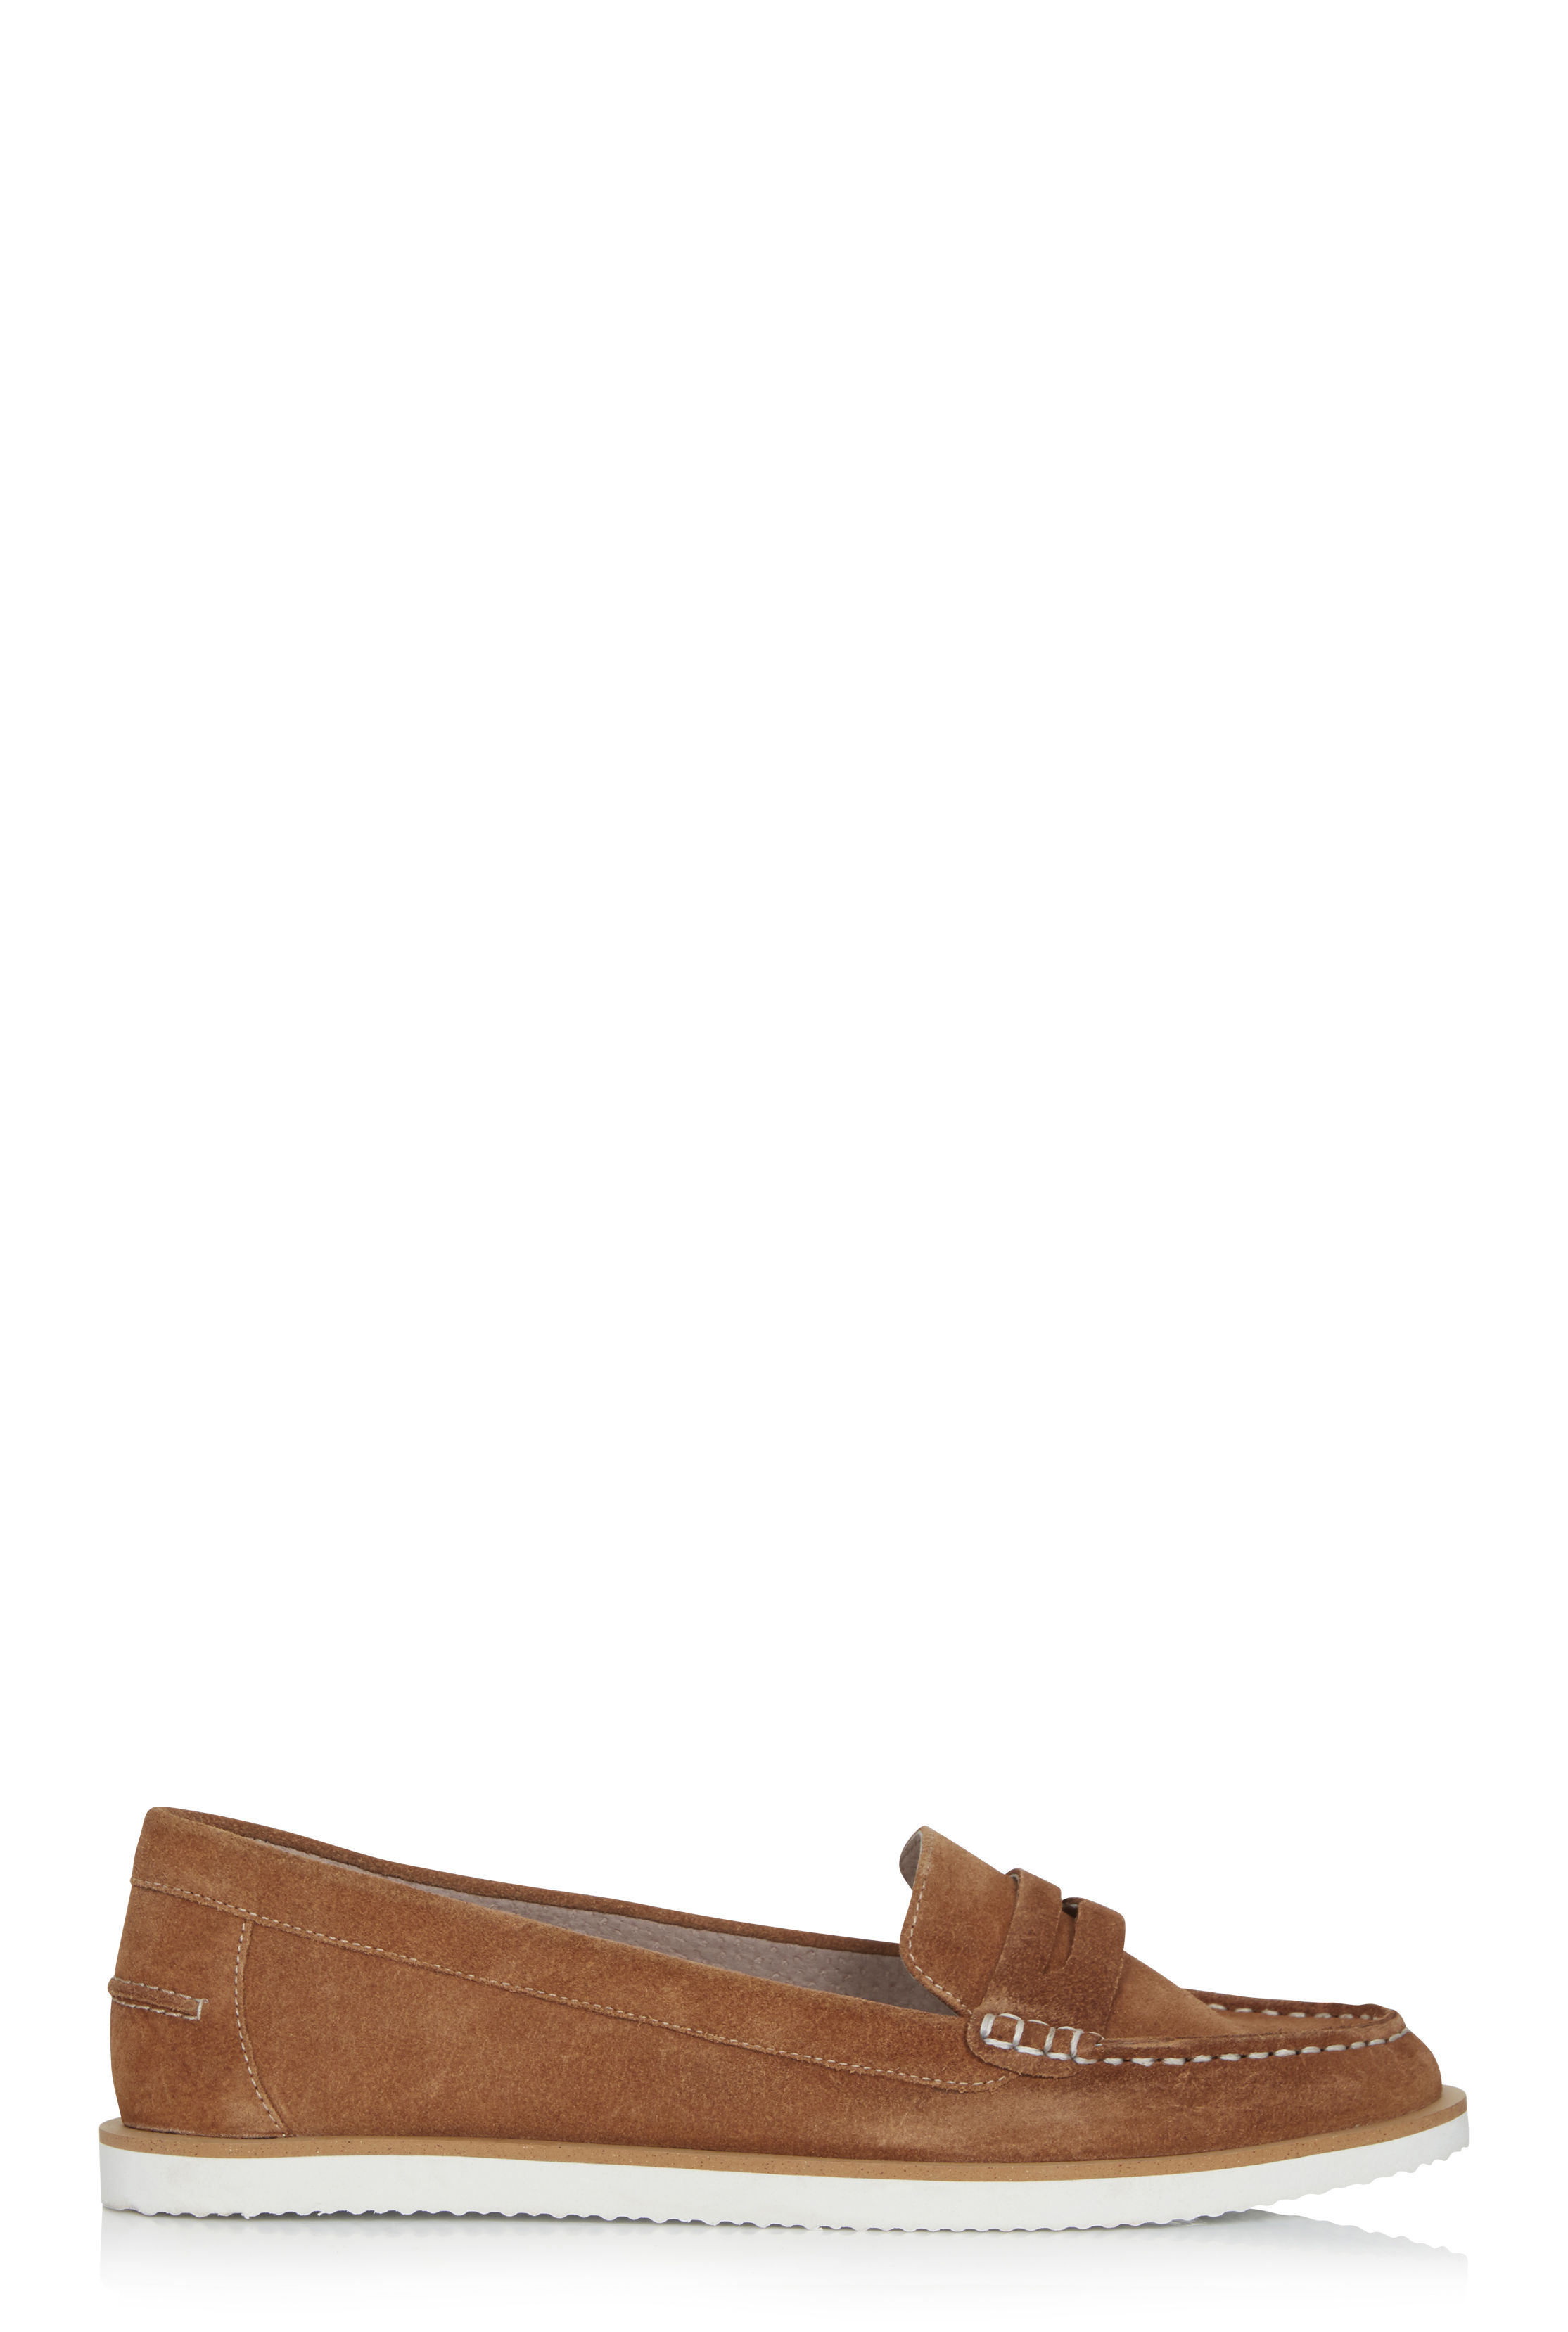 LTS Tan Lilly Suede Boat Shoe